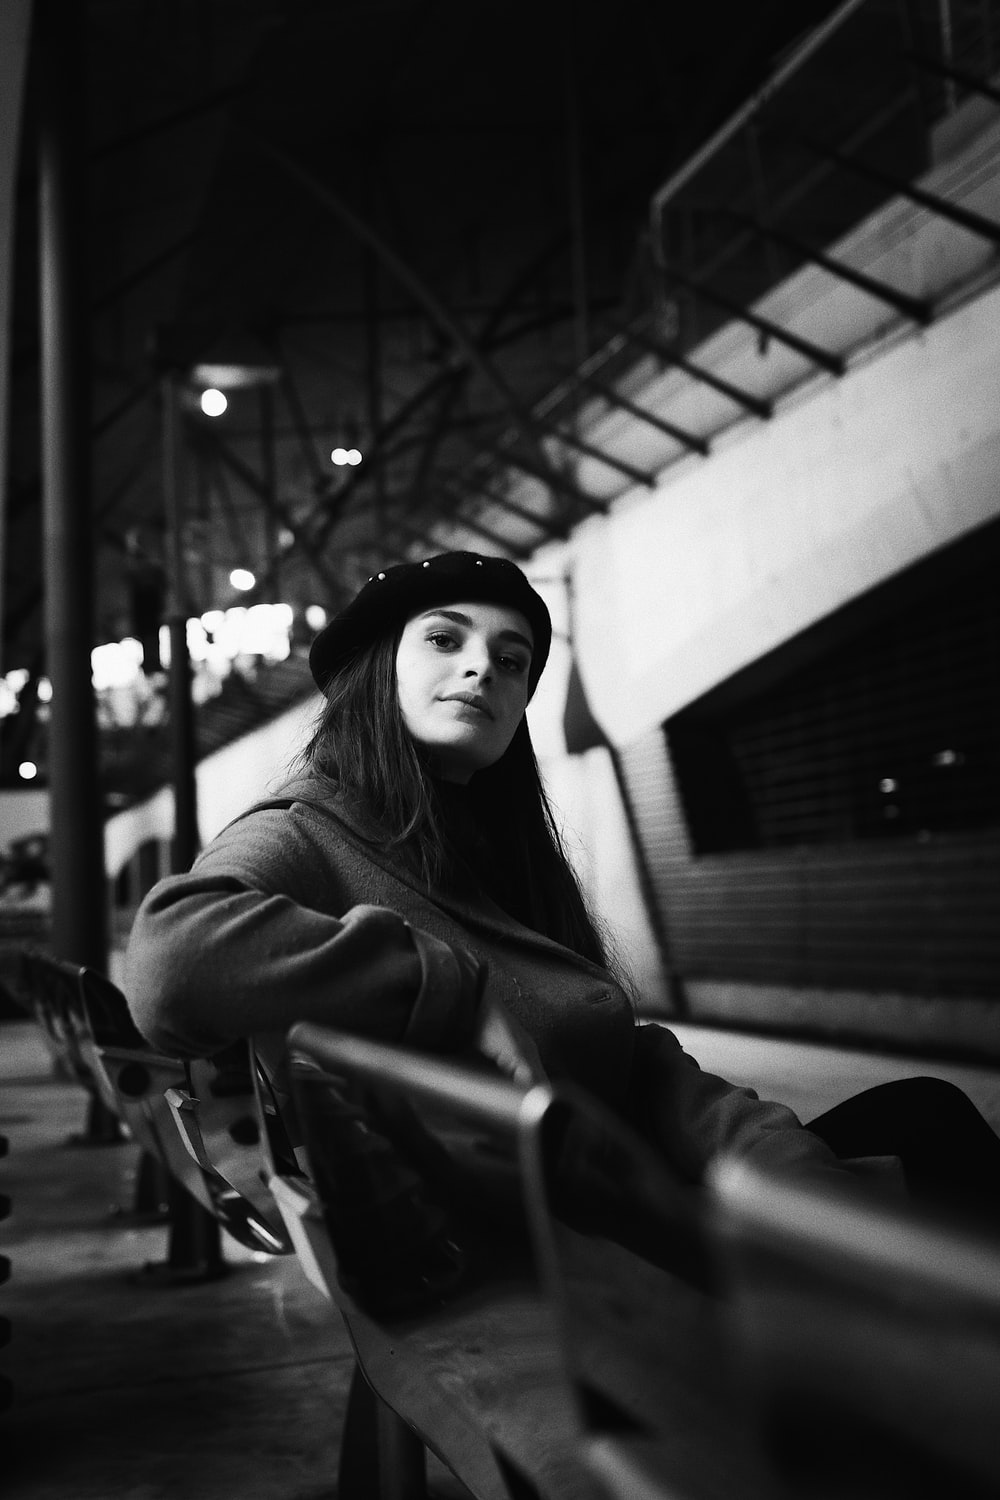 grayscale photography unknown person sitting indoors